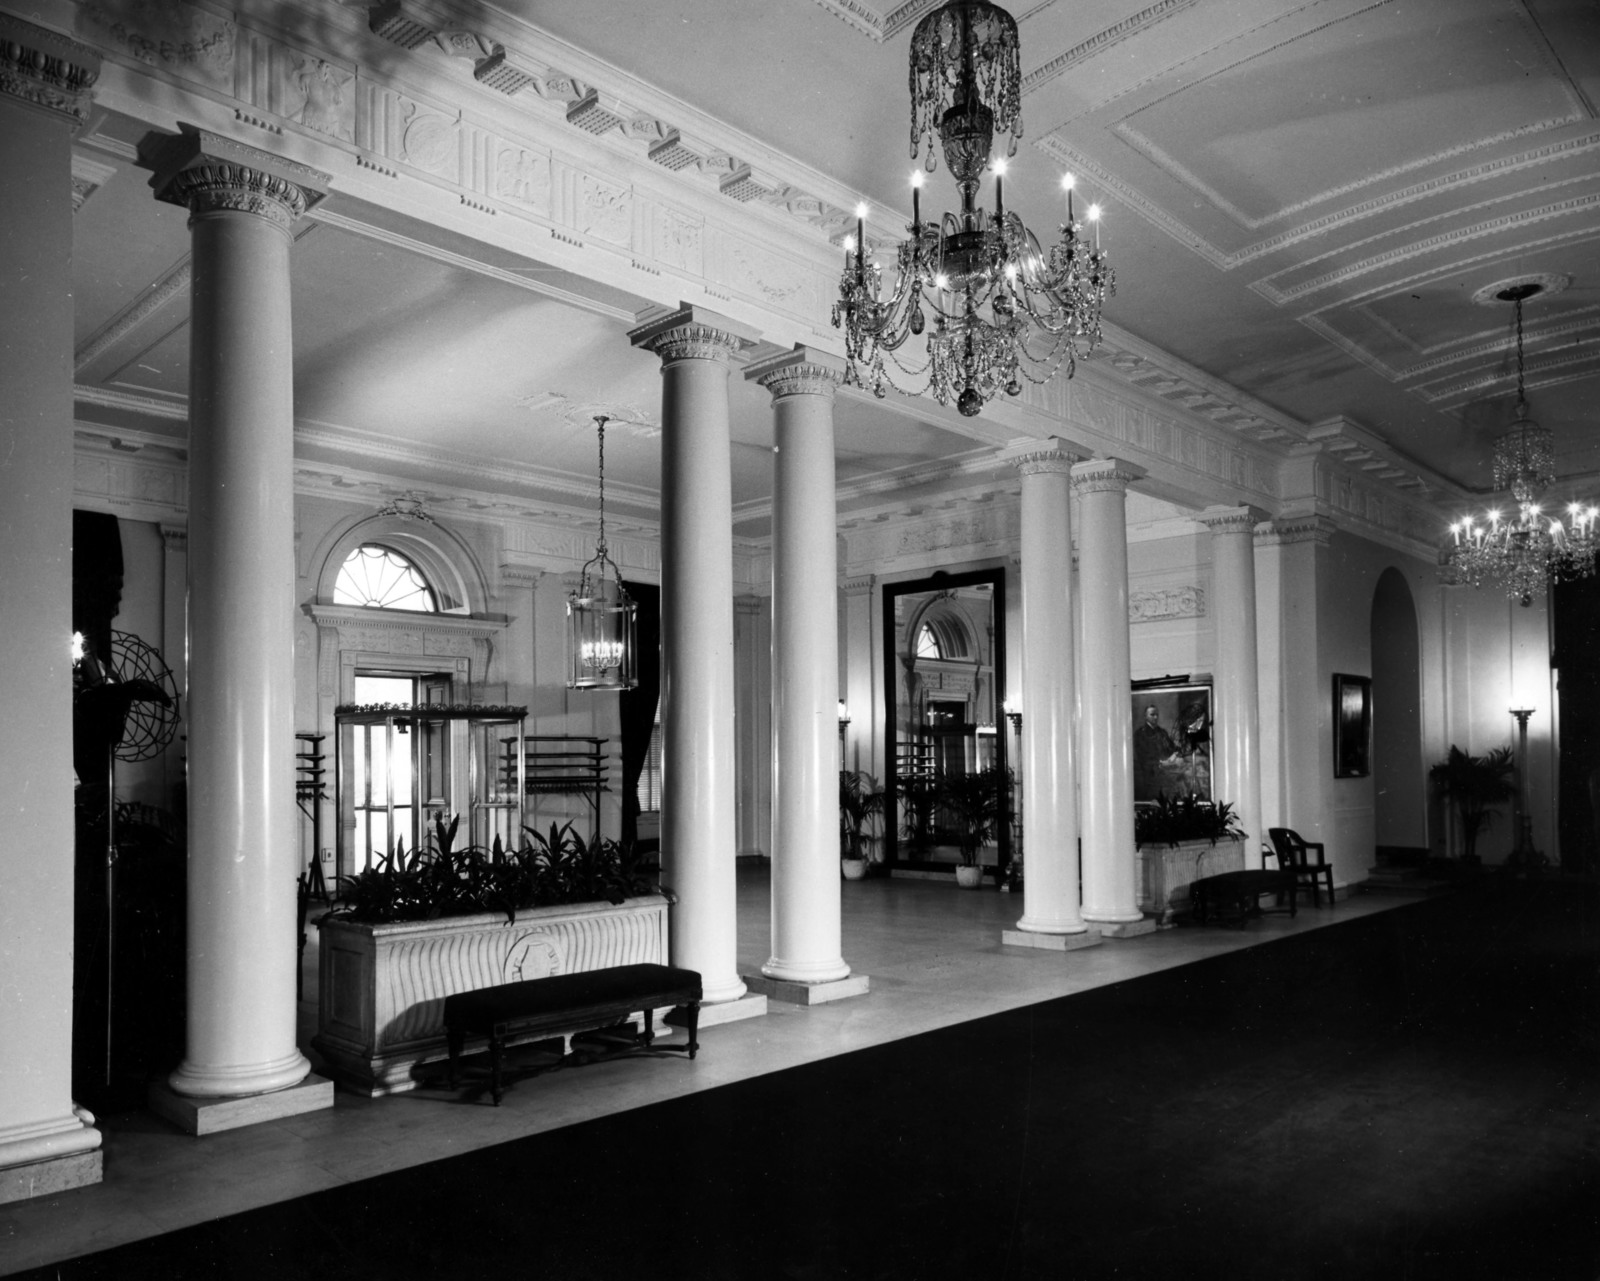 Entrance Hall of the White House